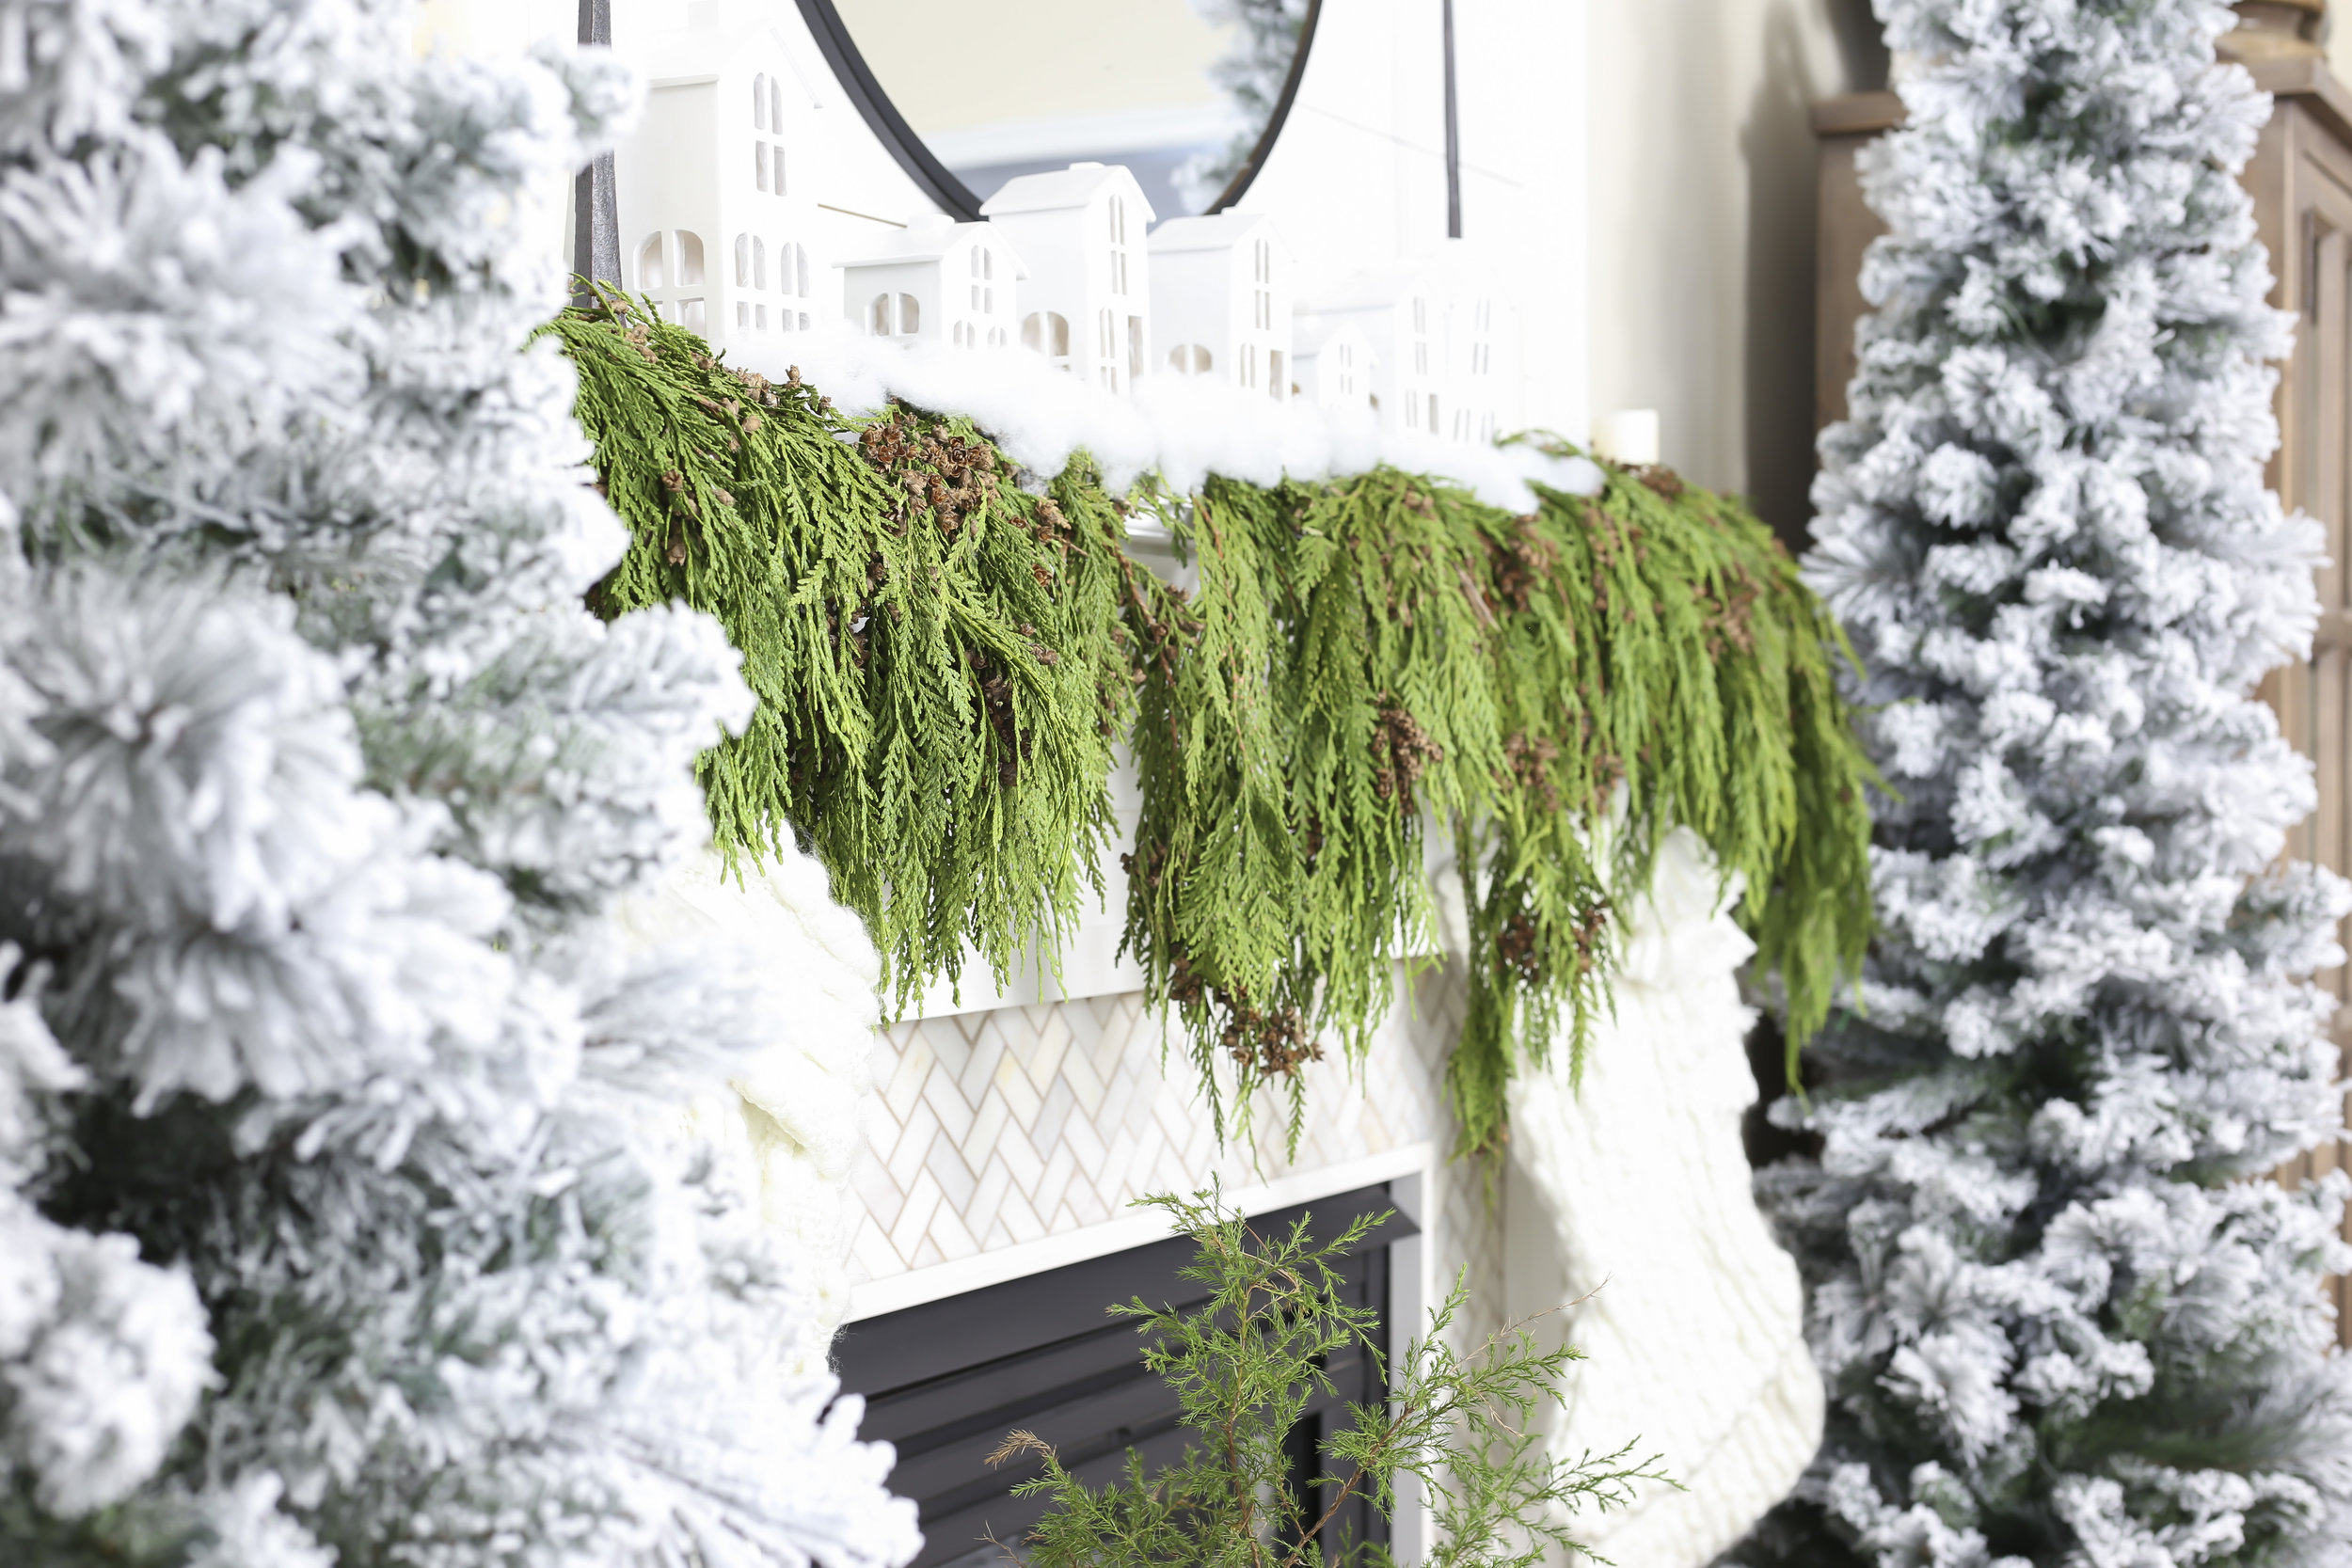 Christmas 2017 Home Tour: Deck The Blogs- Live Garland Mantel Decor with Stockings and Village Scene- Plum Pretty Decor & Design's Christmas Home Tour